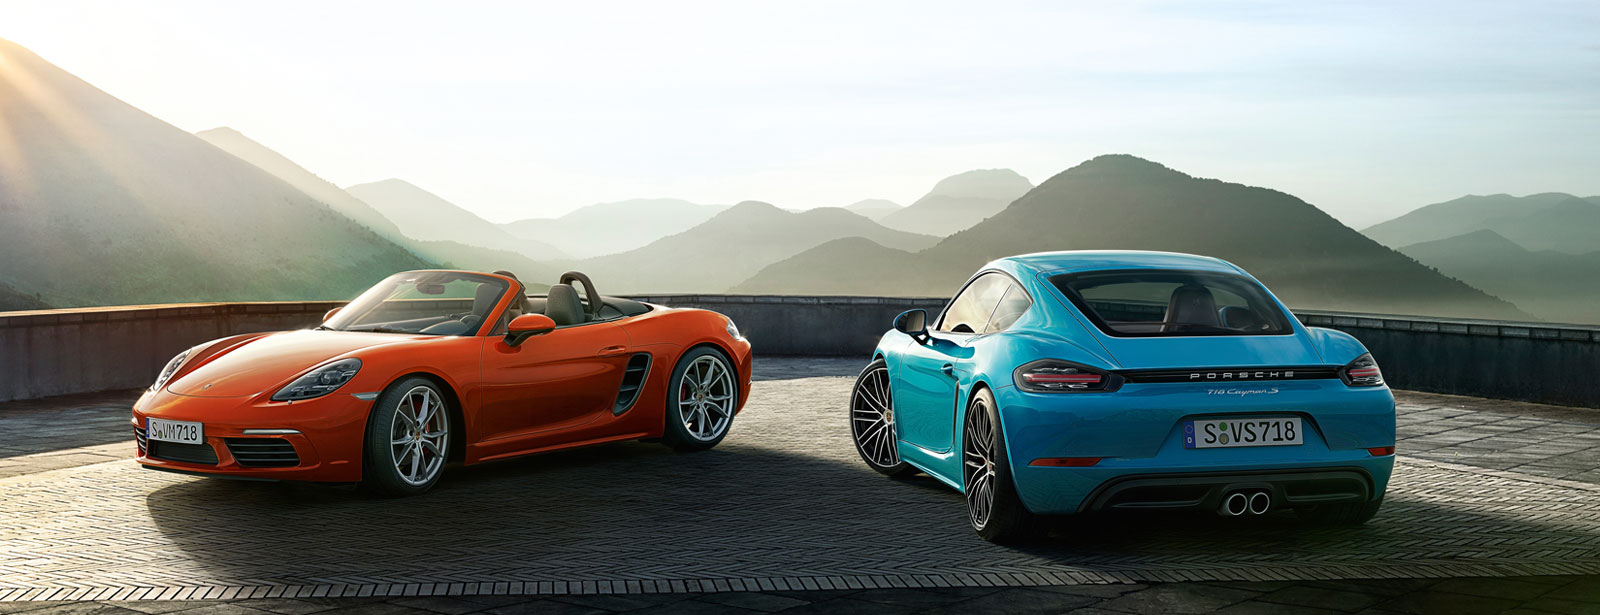 Porsche - For the sport of it. - The new 718 Cayman and 718 Boxster models.